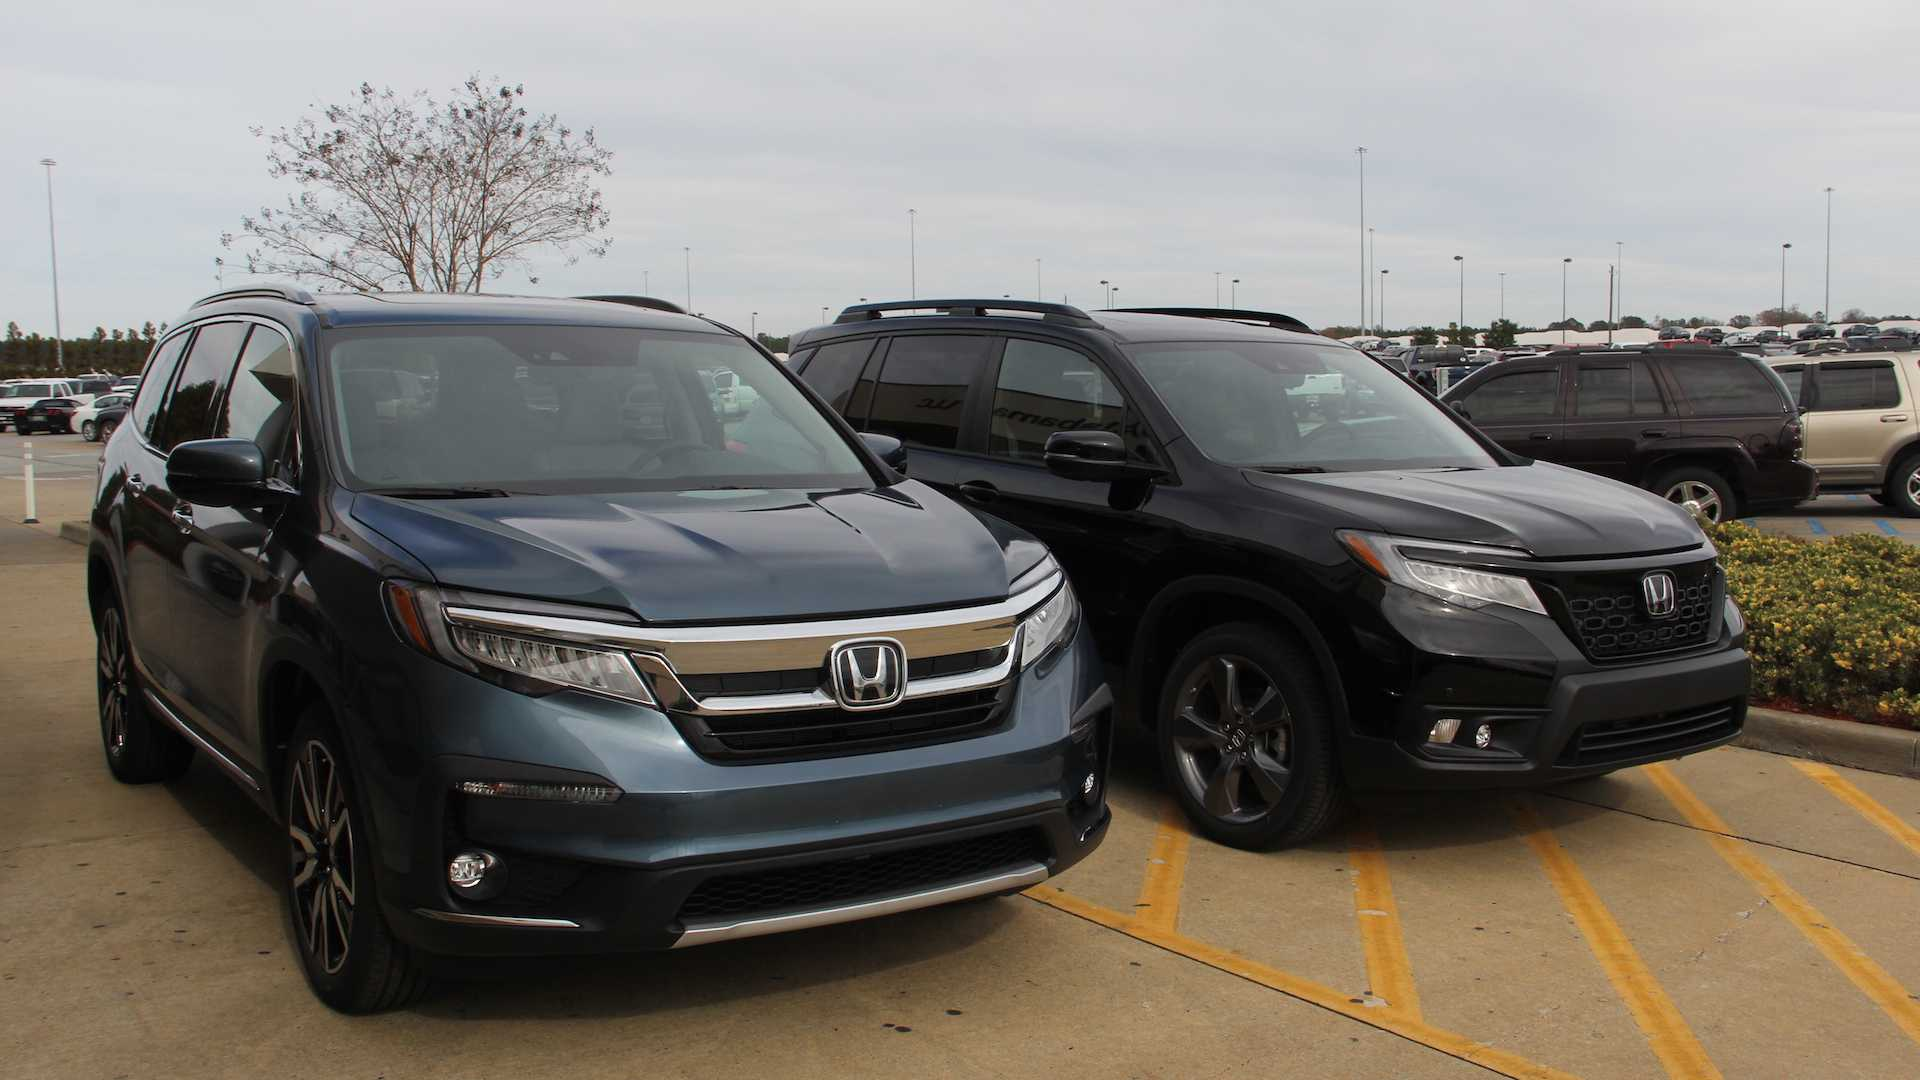 See The Differences 2019 Honda Passport Versus 2019 Honda Pilot